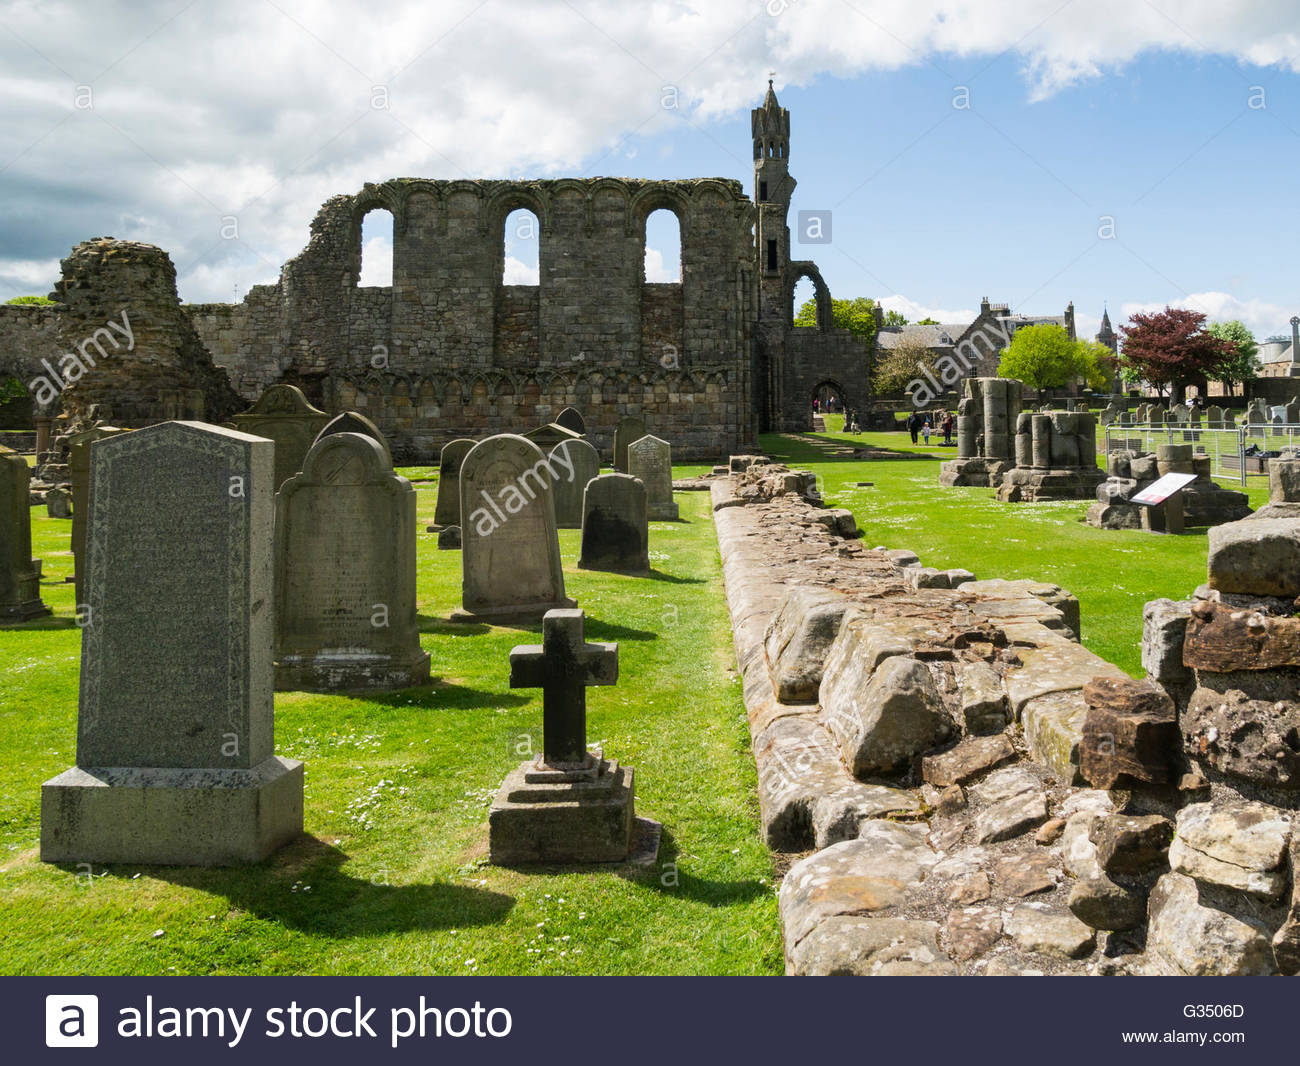 St. Rule's Tower Fife and Angus, Ruins nave and St Rule's Tower St Andrews Cathedral Fife Scotland ...